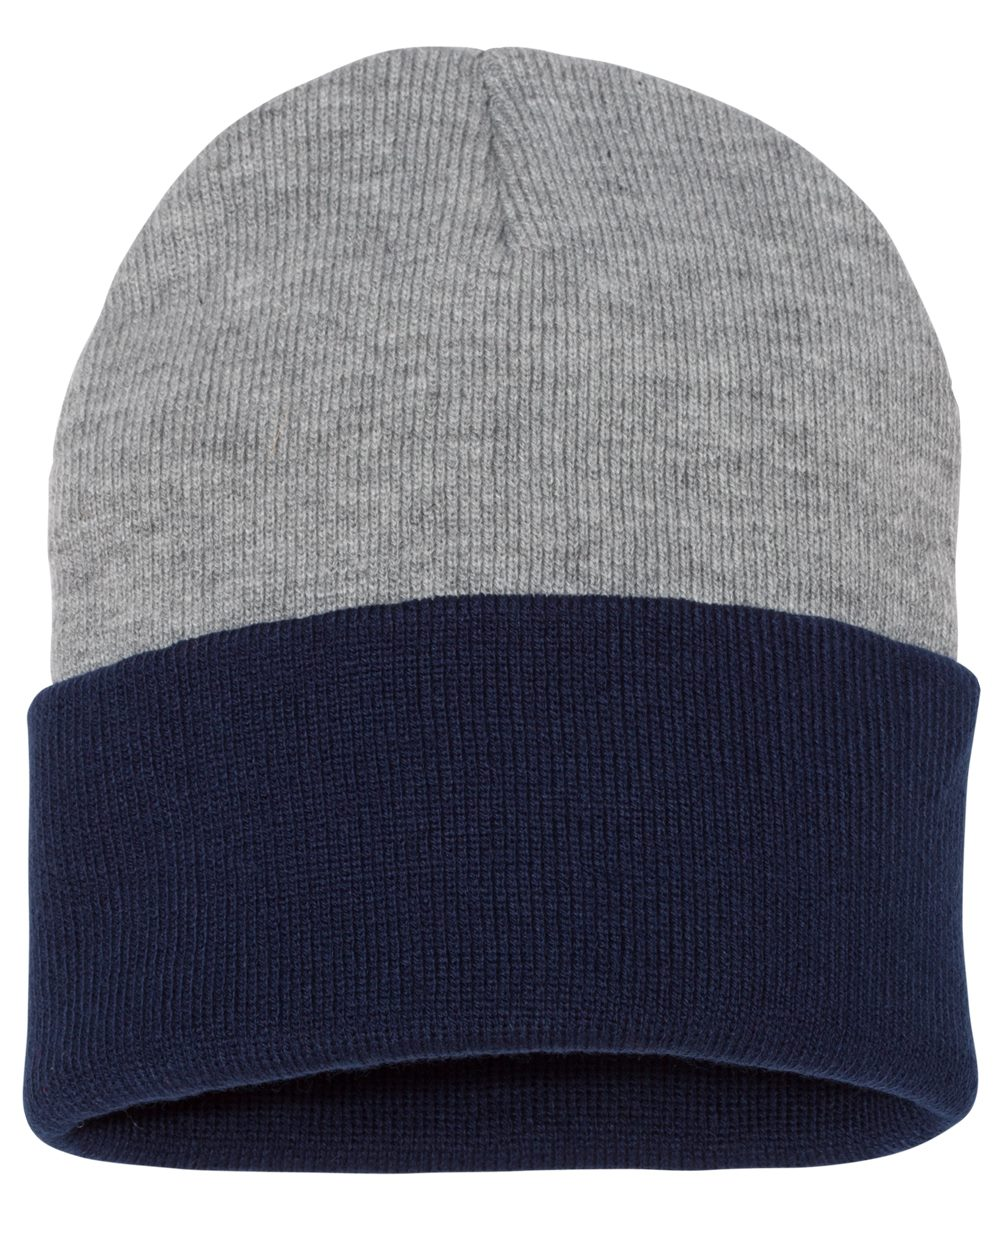 Sportsman SP12T - 12 Inch Knit Beanie